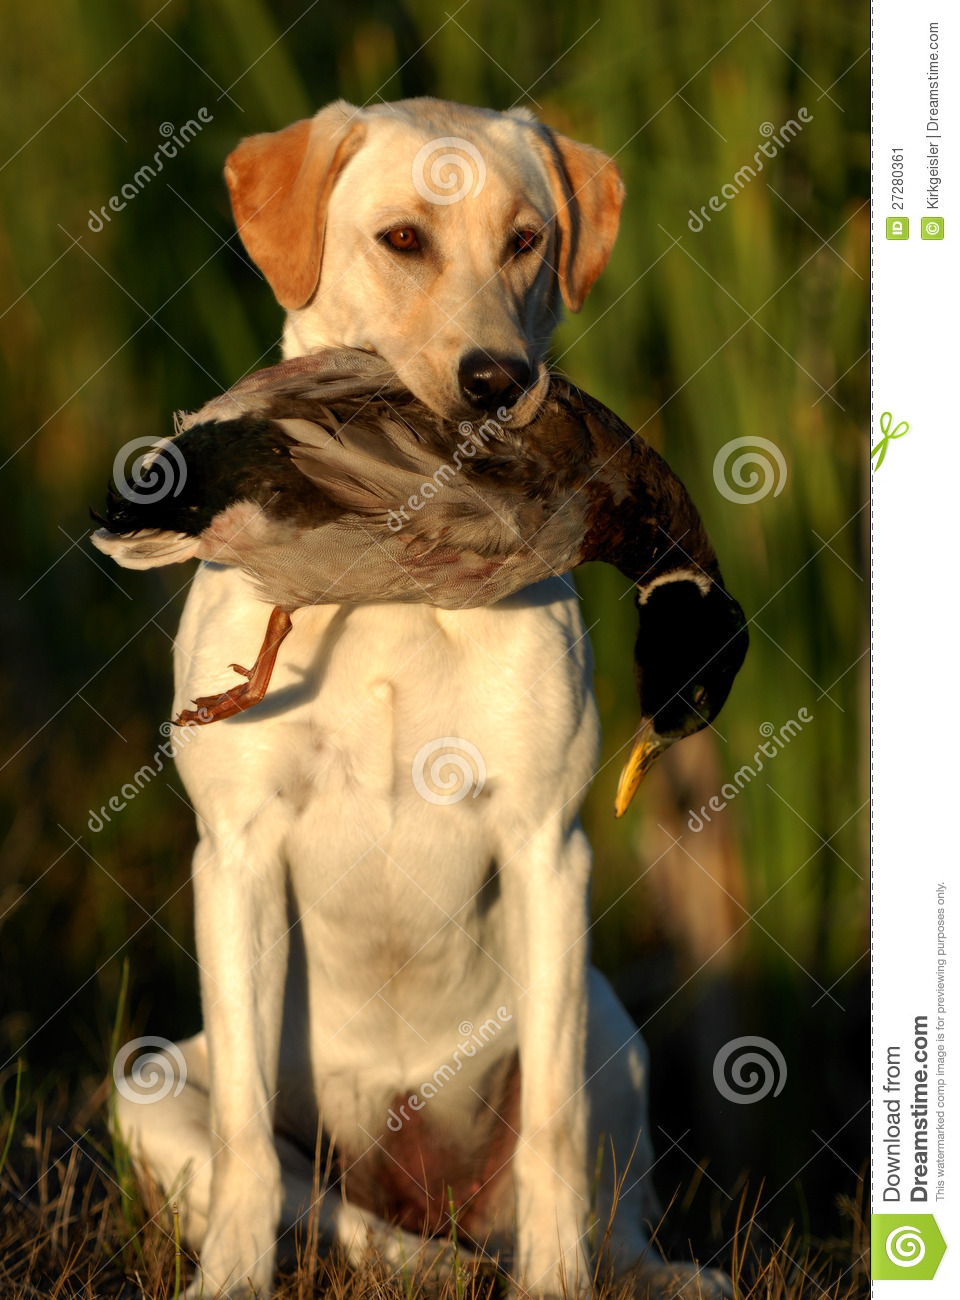 More similar stock images of ` Hunting Yellow labrador `